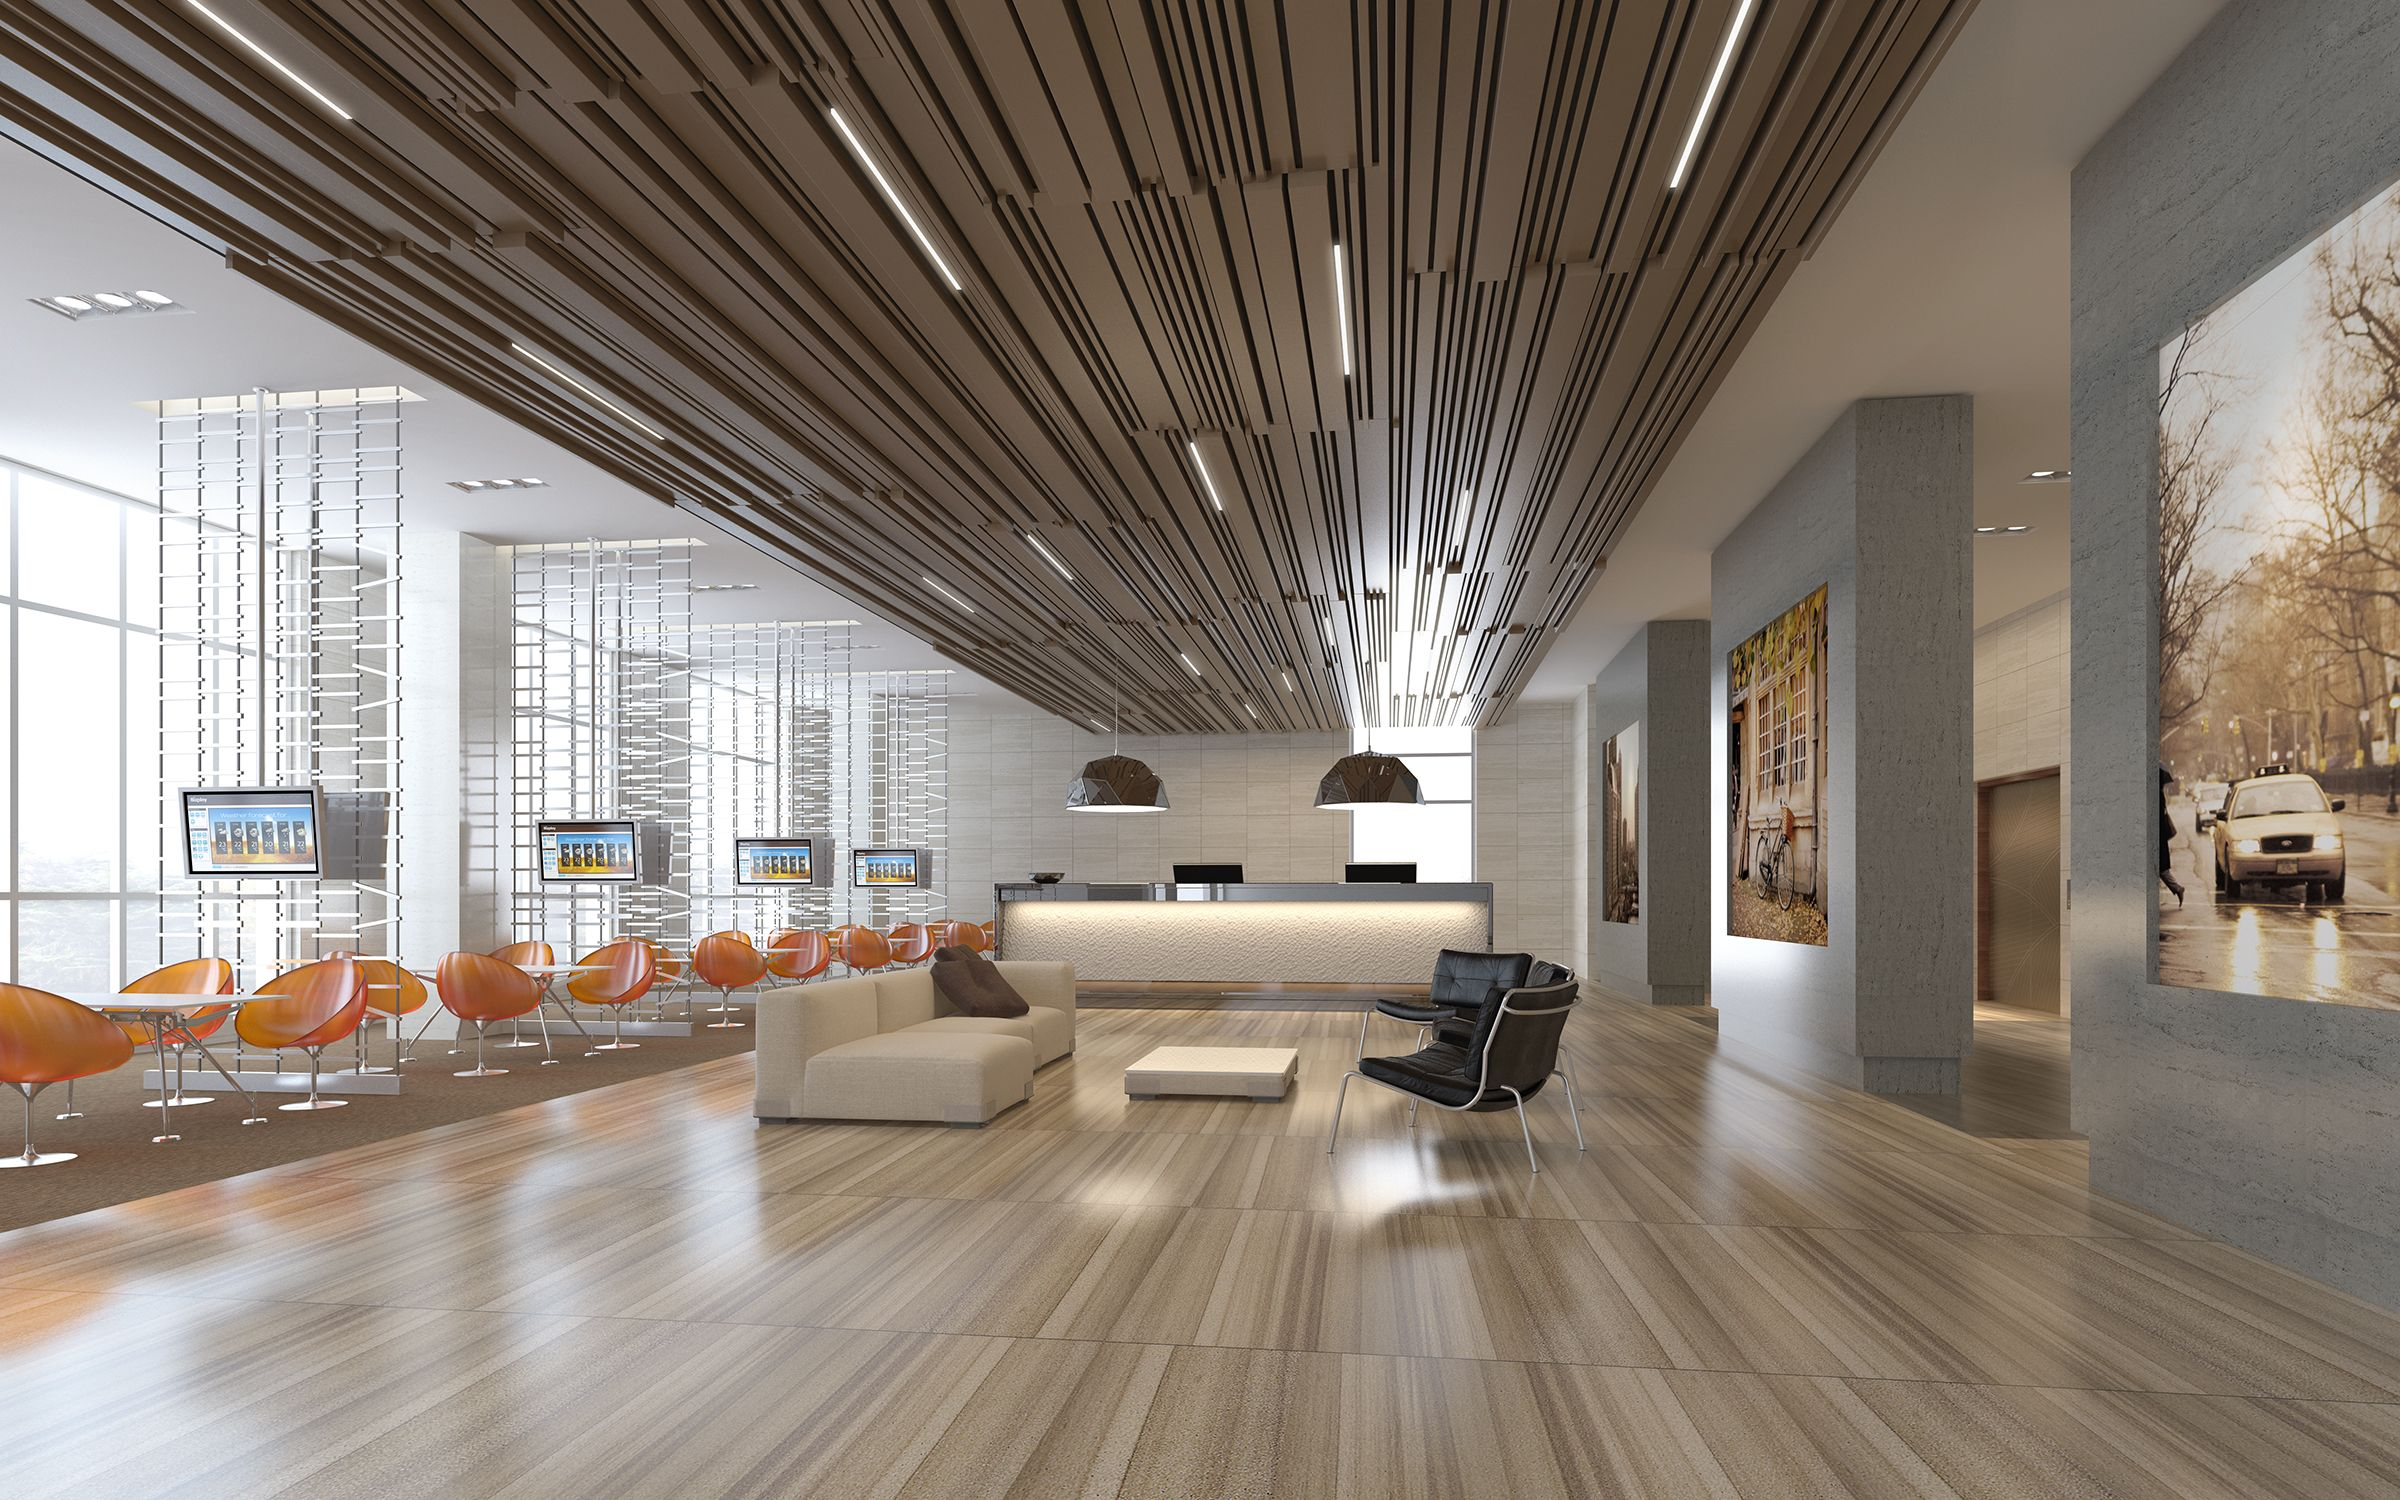 bxd multi panel ceiling new innovative inspirational